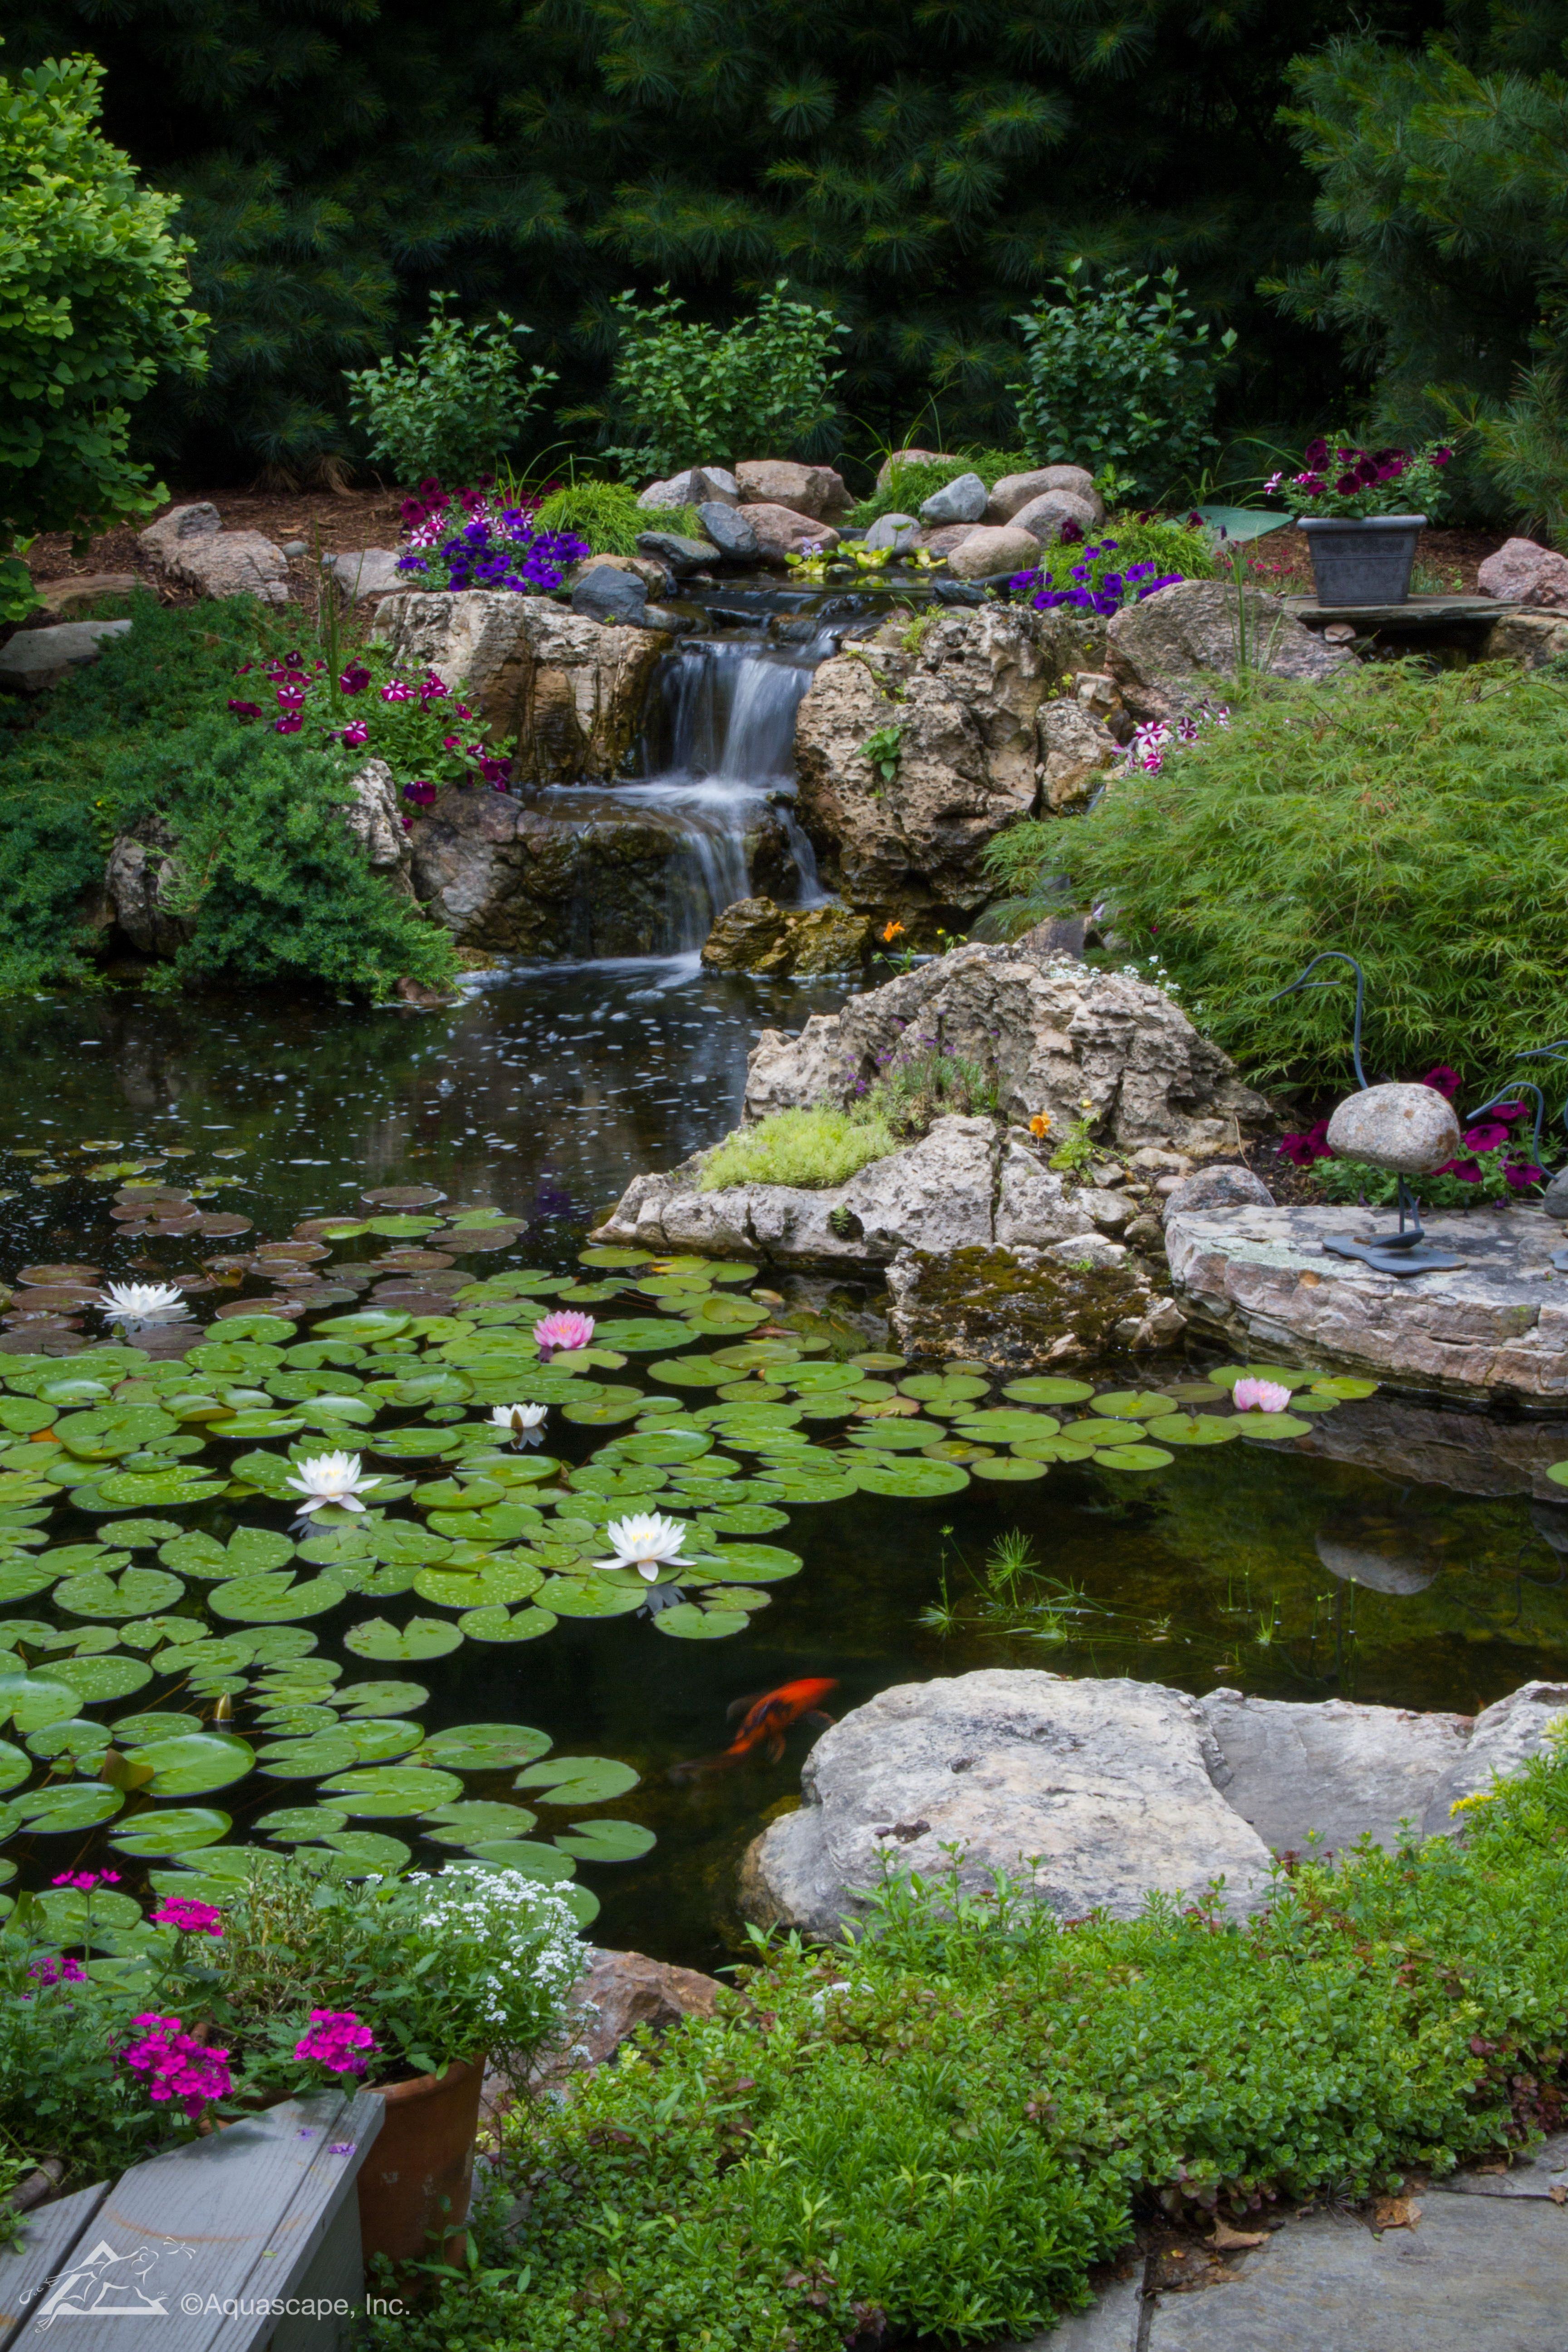 How Much Does A Backyard Pond Cost Garden Pond Design Backyard Water Feature Koi Pond